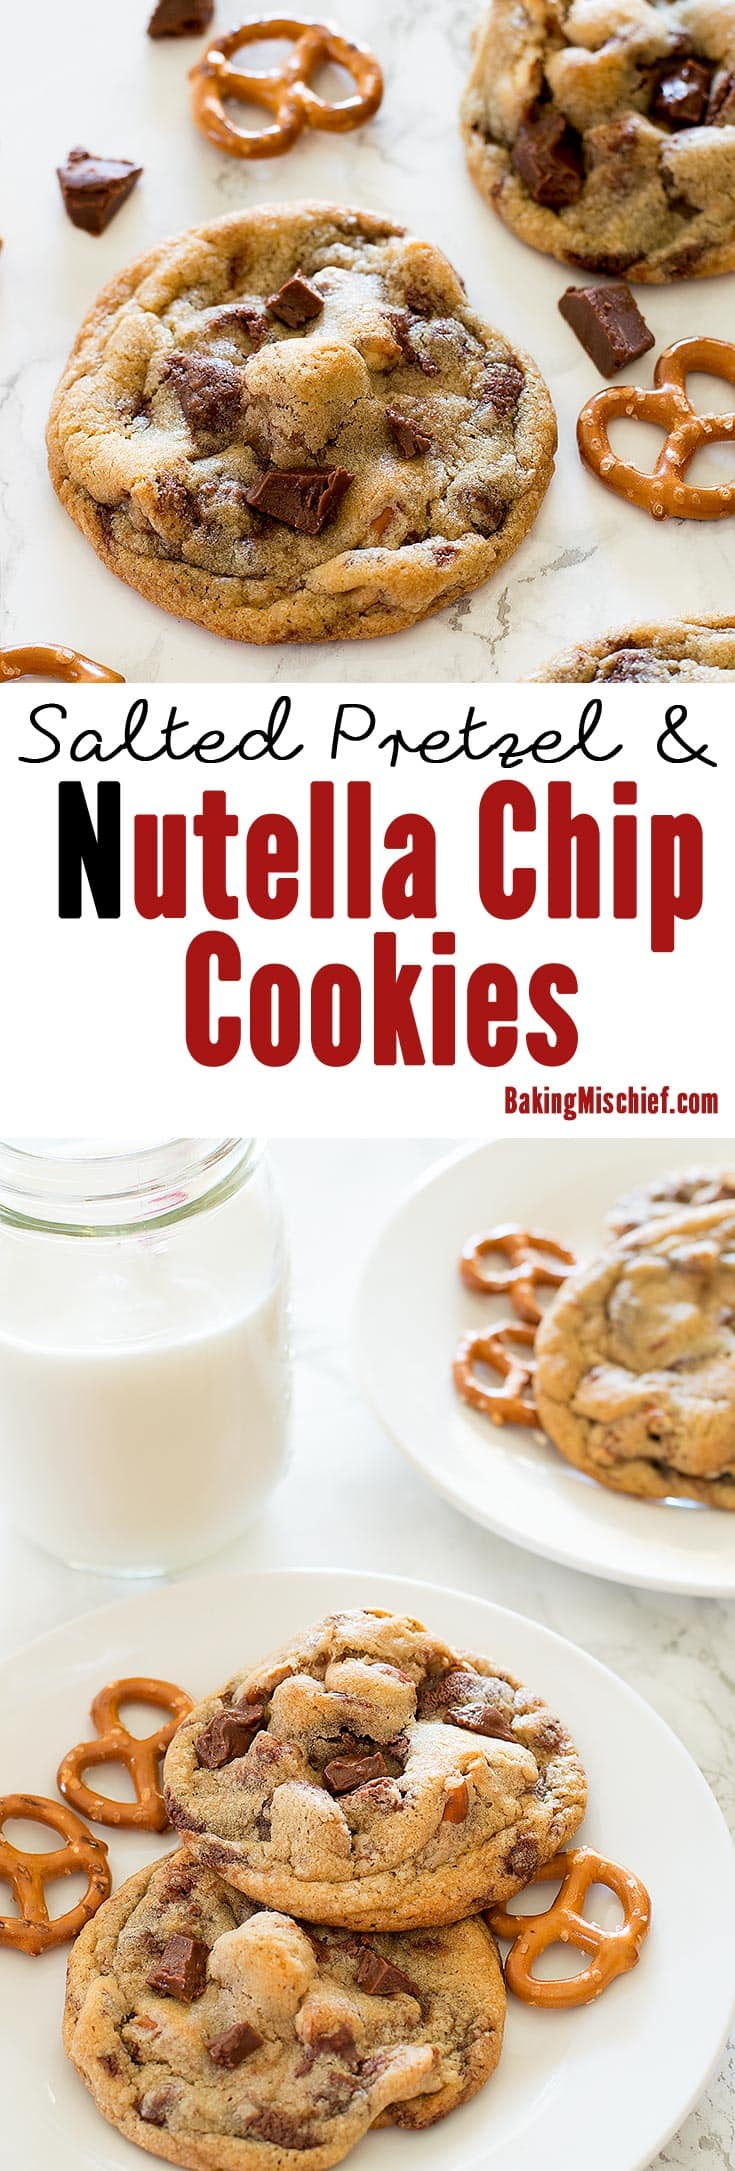 Delicious cookies with chunks of salty, crunchy pretzel and homemade Nutella chips in every bite. Recipe includes nutritional information. From BakingMischief.com